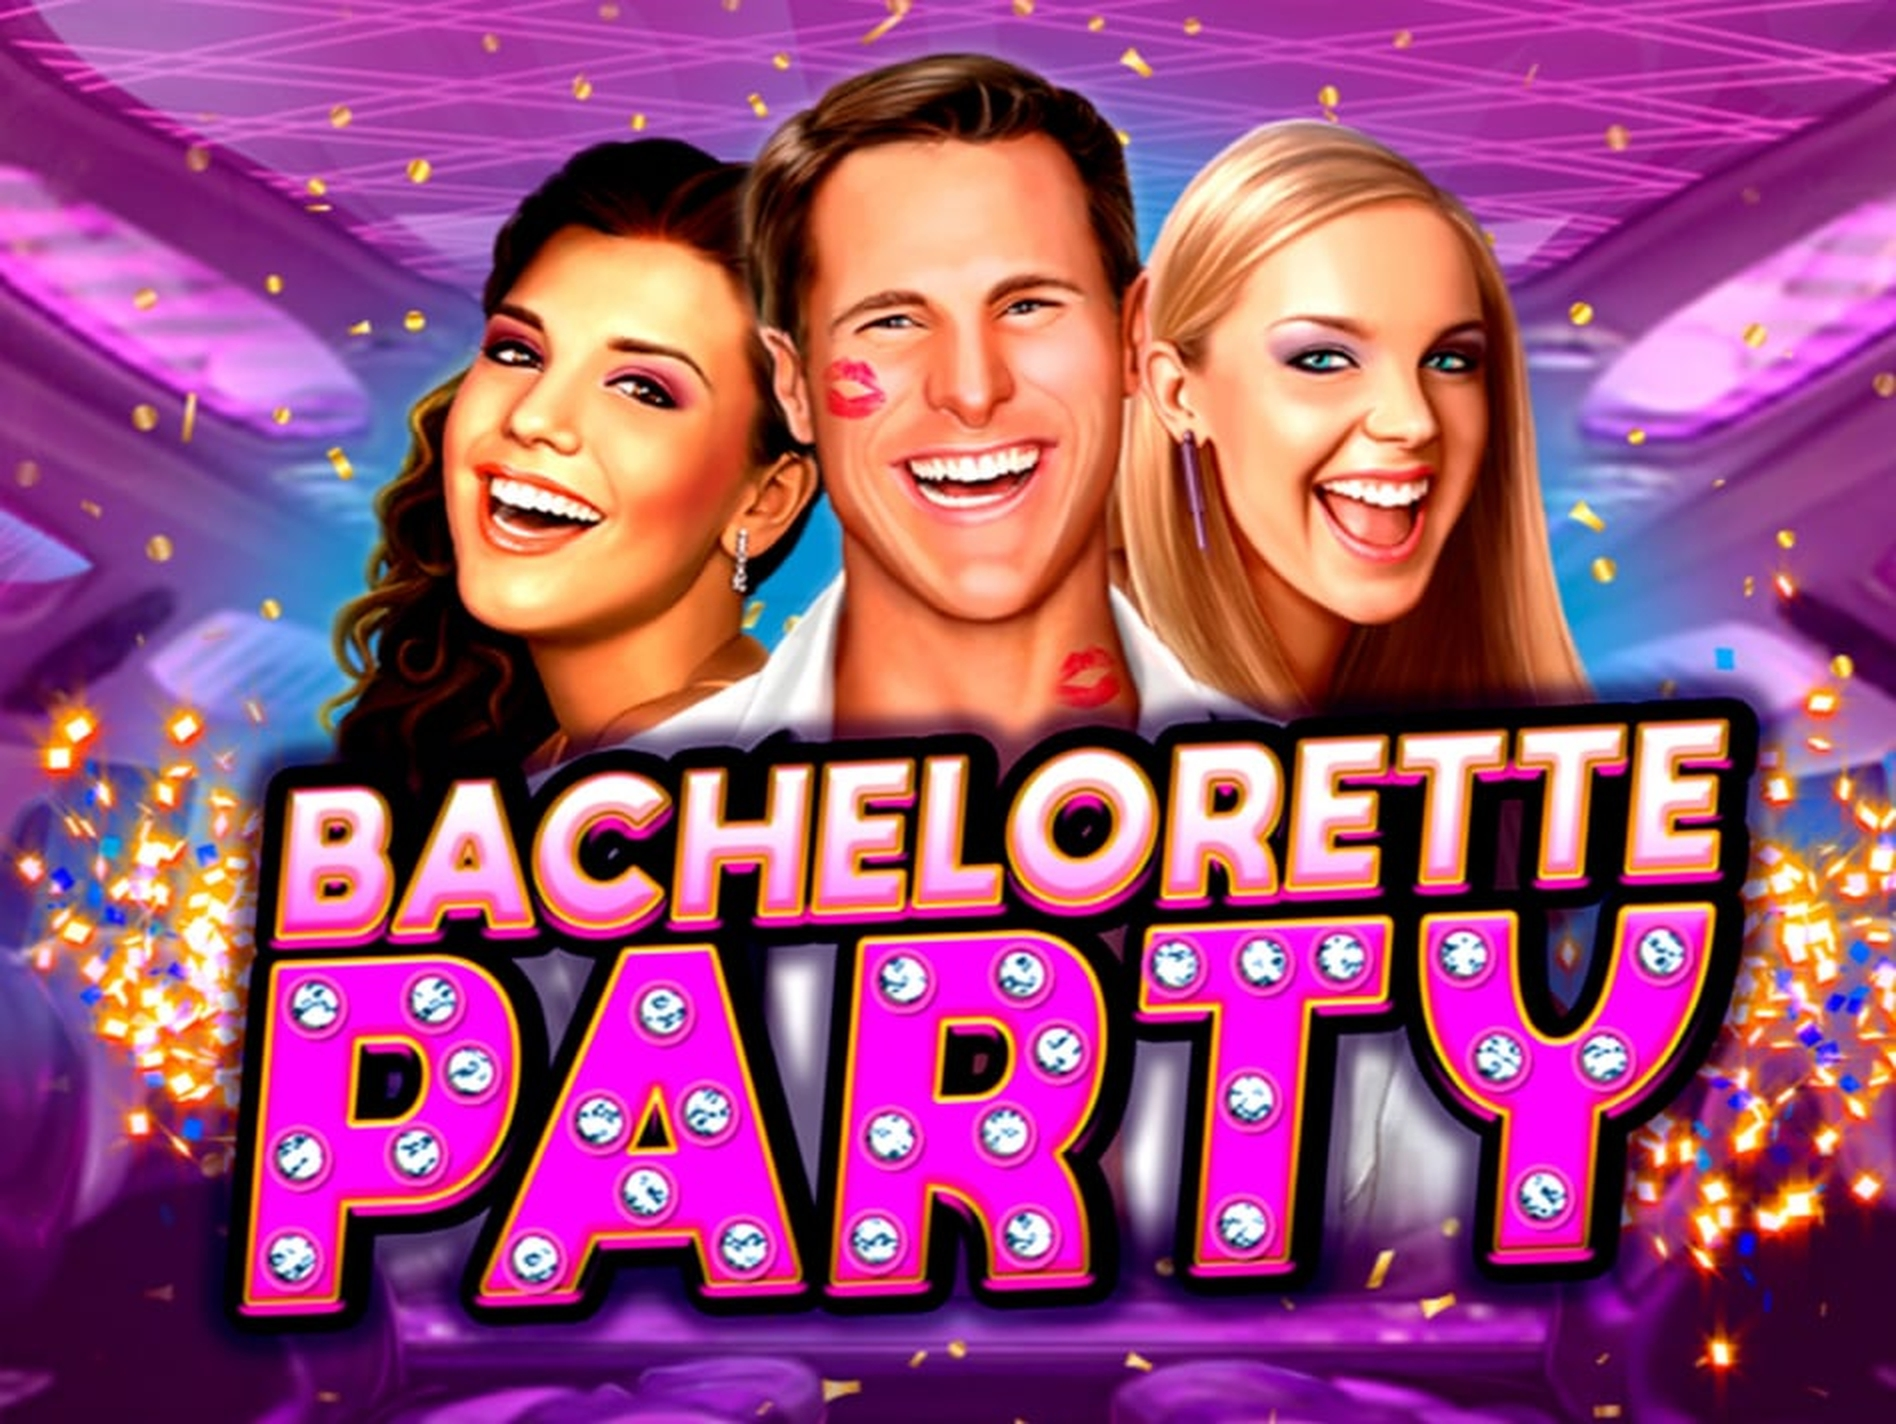 The Bachelorette Party Online Slot Demo Game by Booming Games